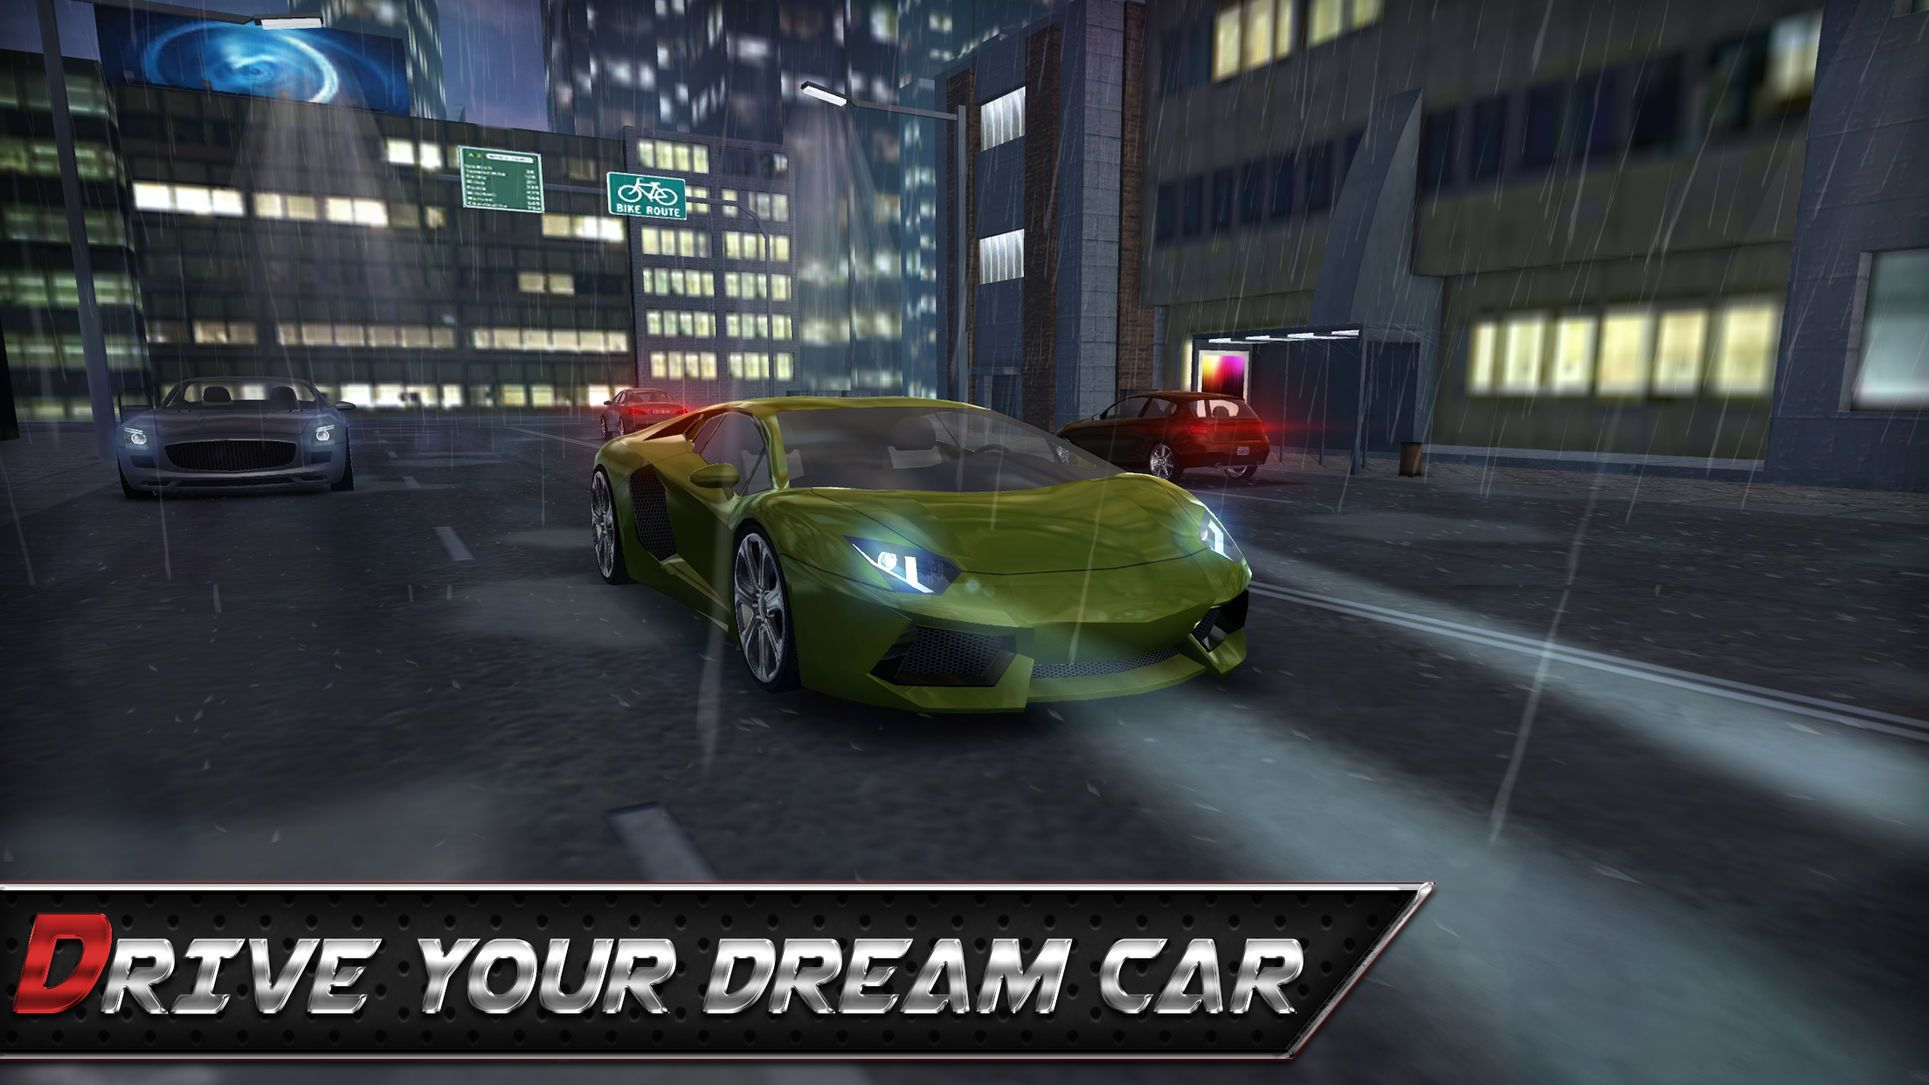 Real Driving 3d Simulation Racing Apps Ios Car Dream Cars Driving